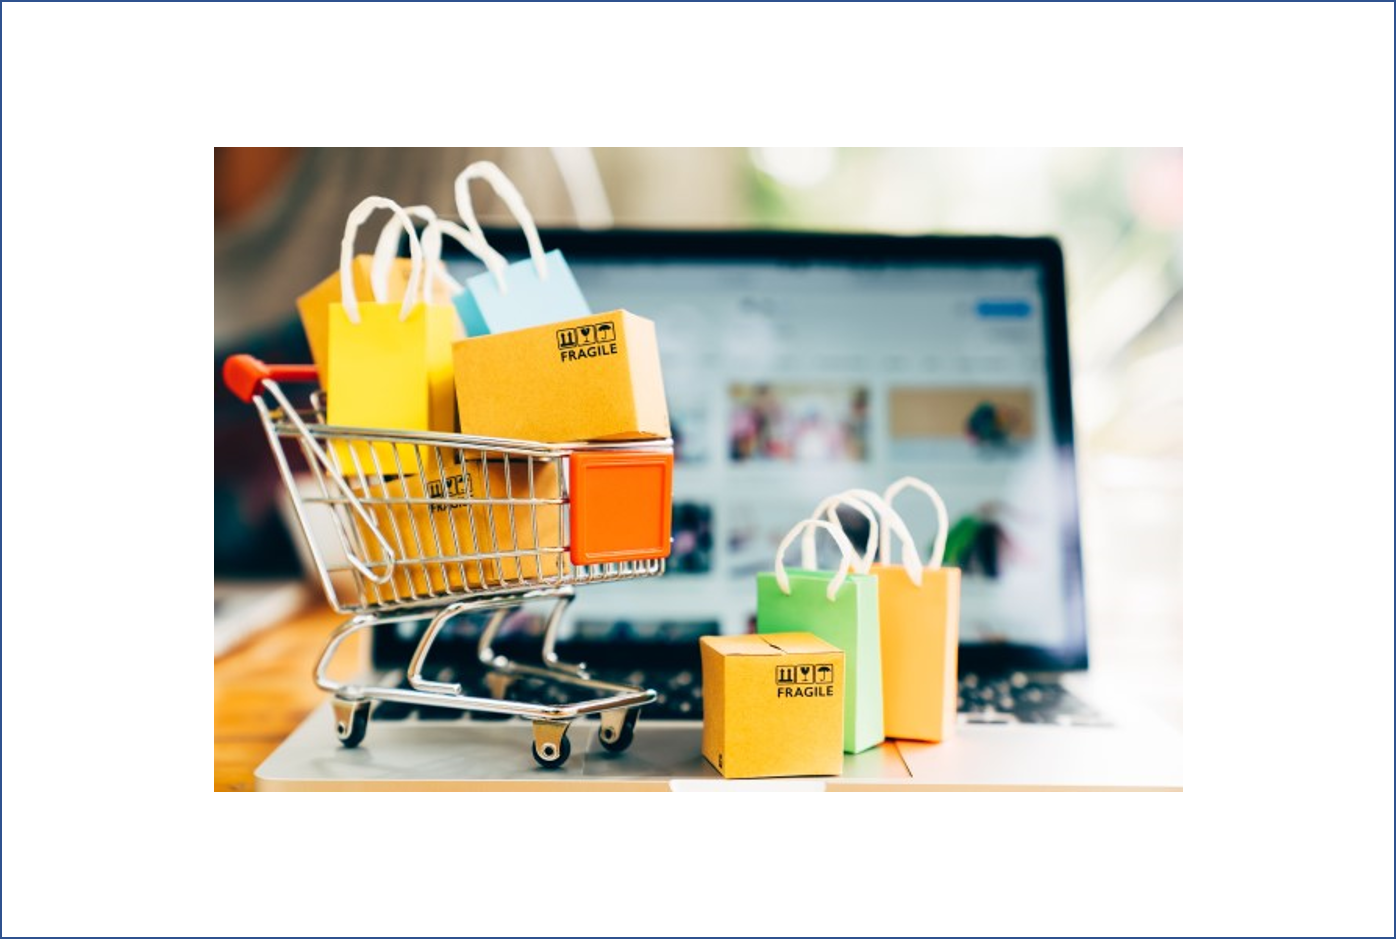 Are you using the best e-commerce fulfilment strategy to support your business?